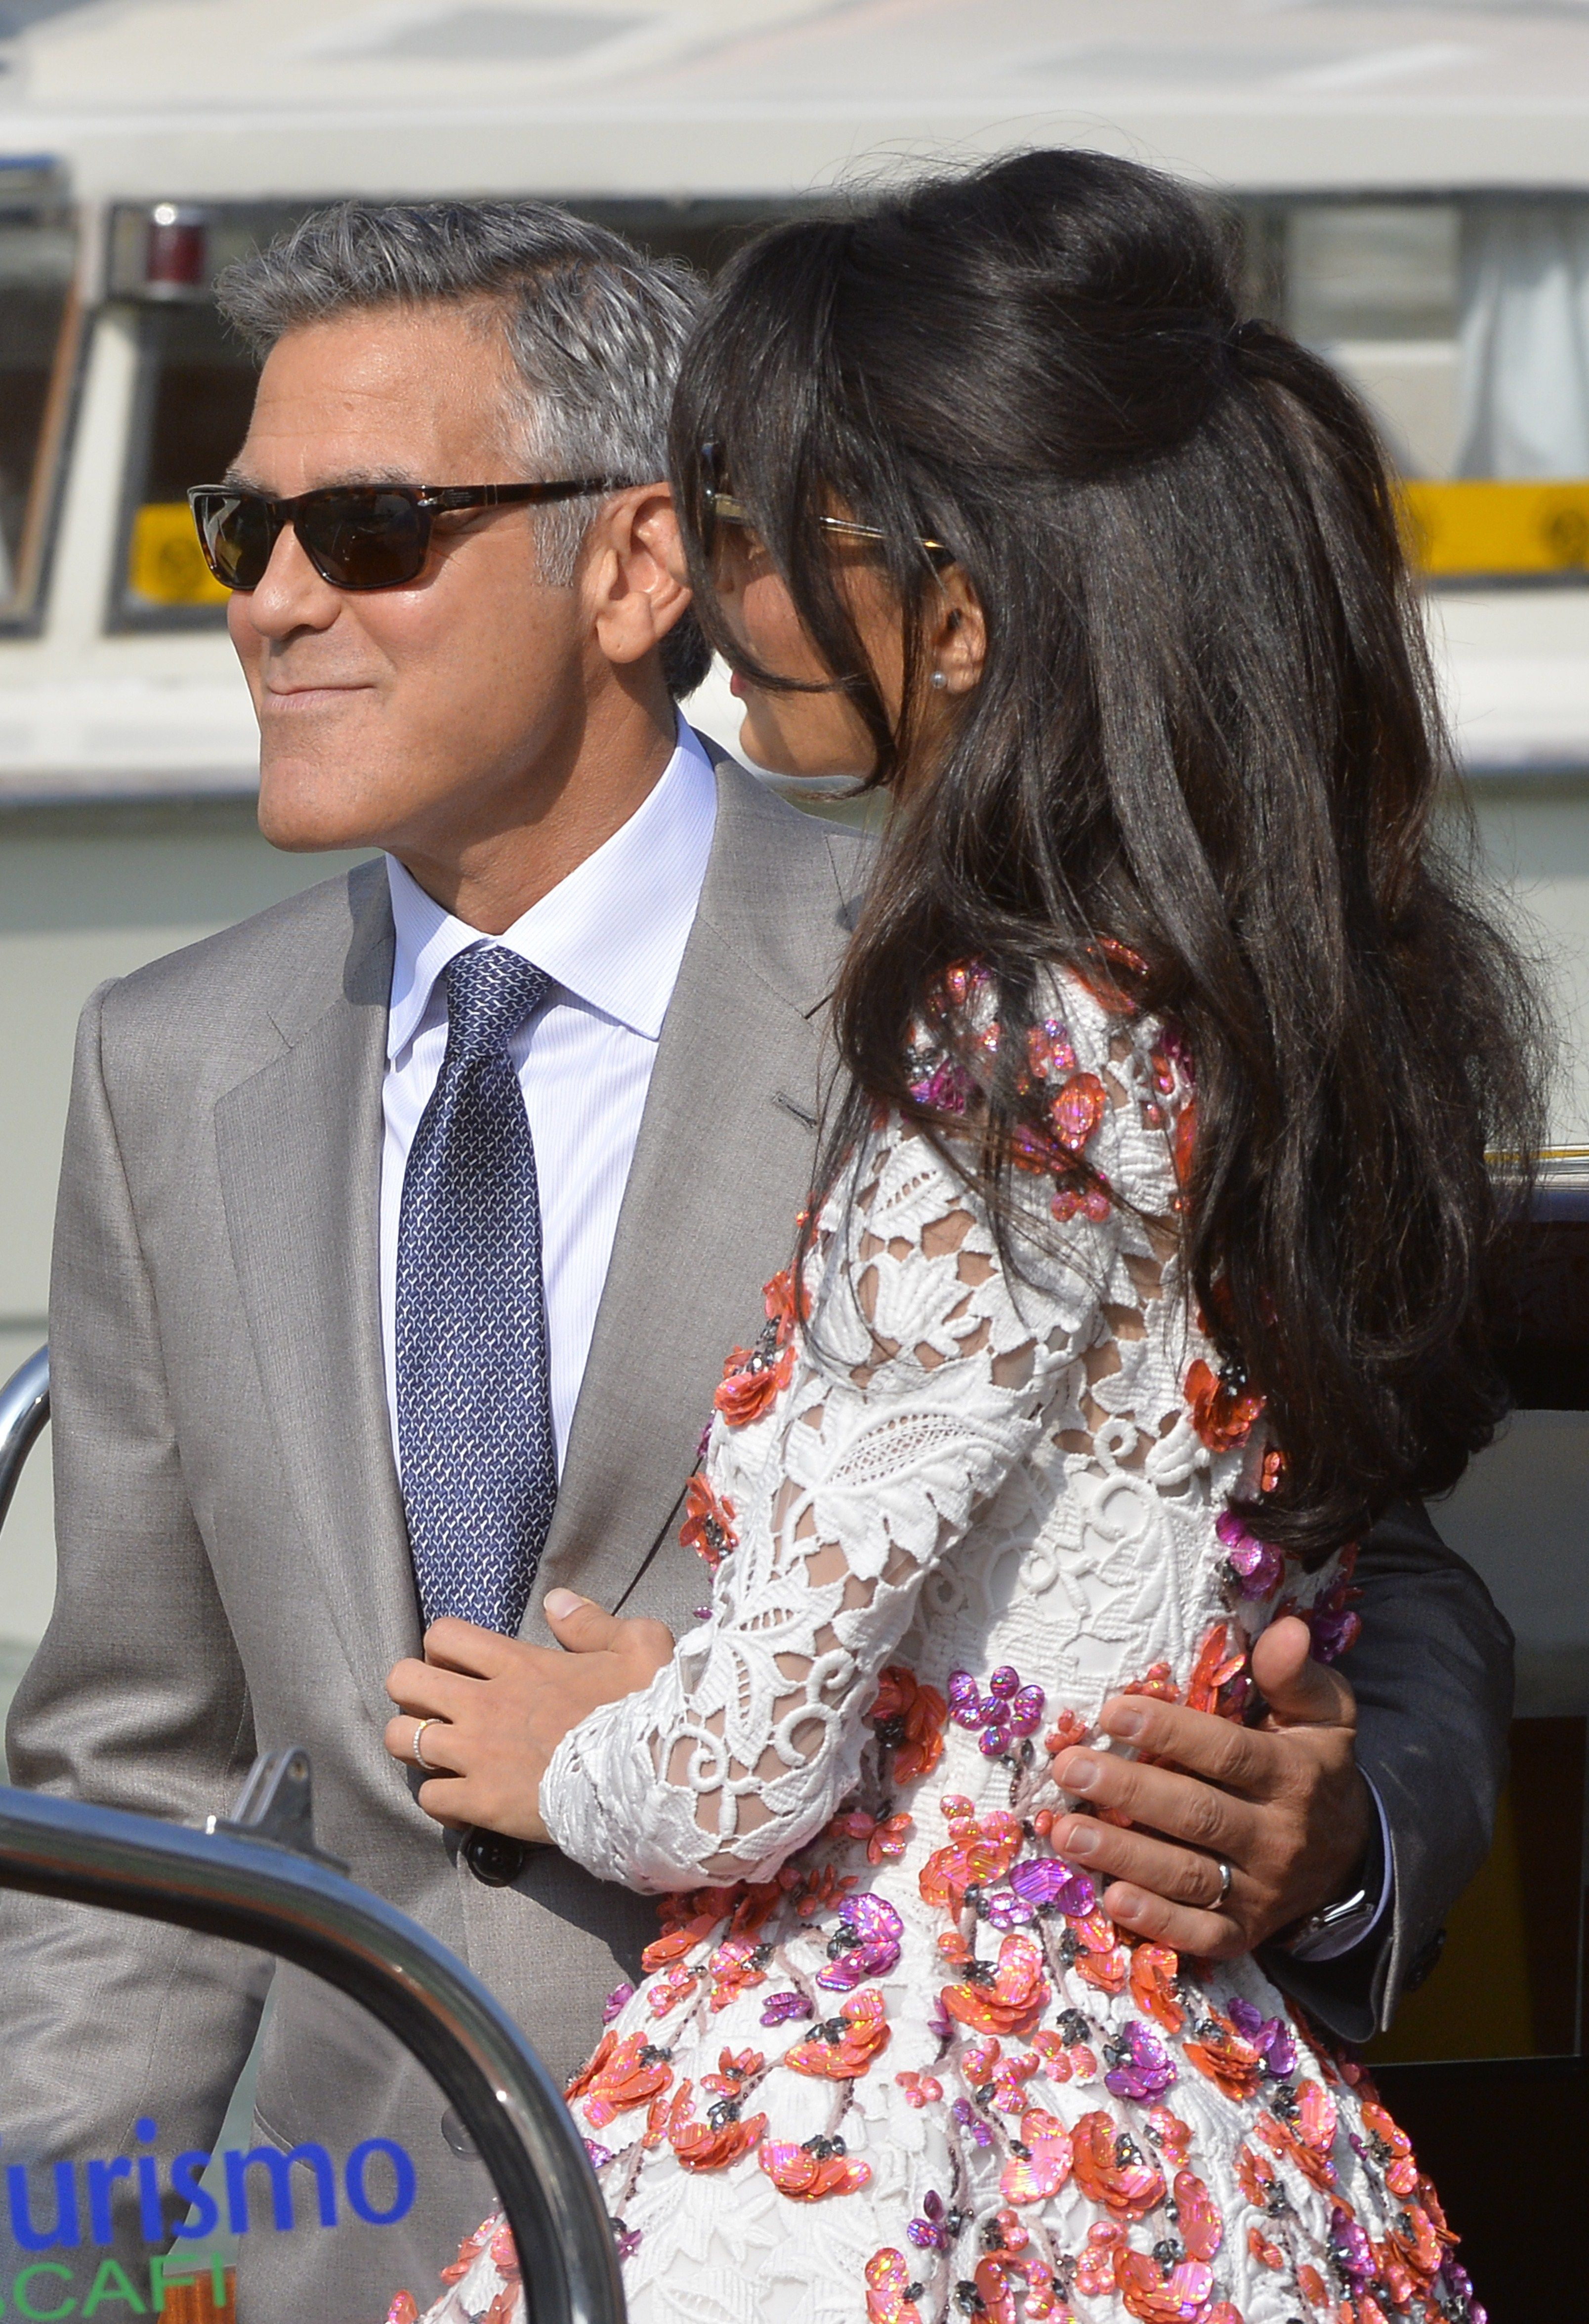 An Analysis of Amal Clooney's Glorious Hair